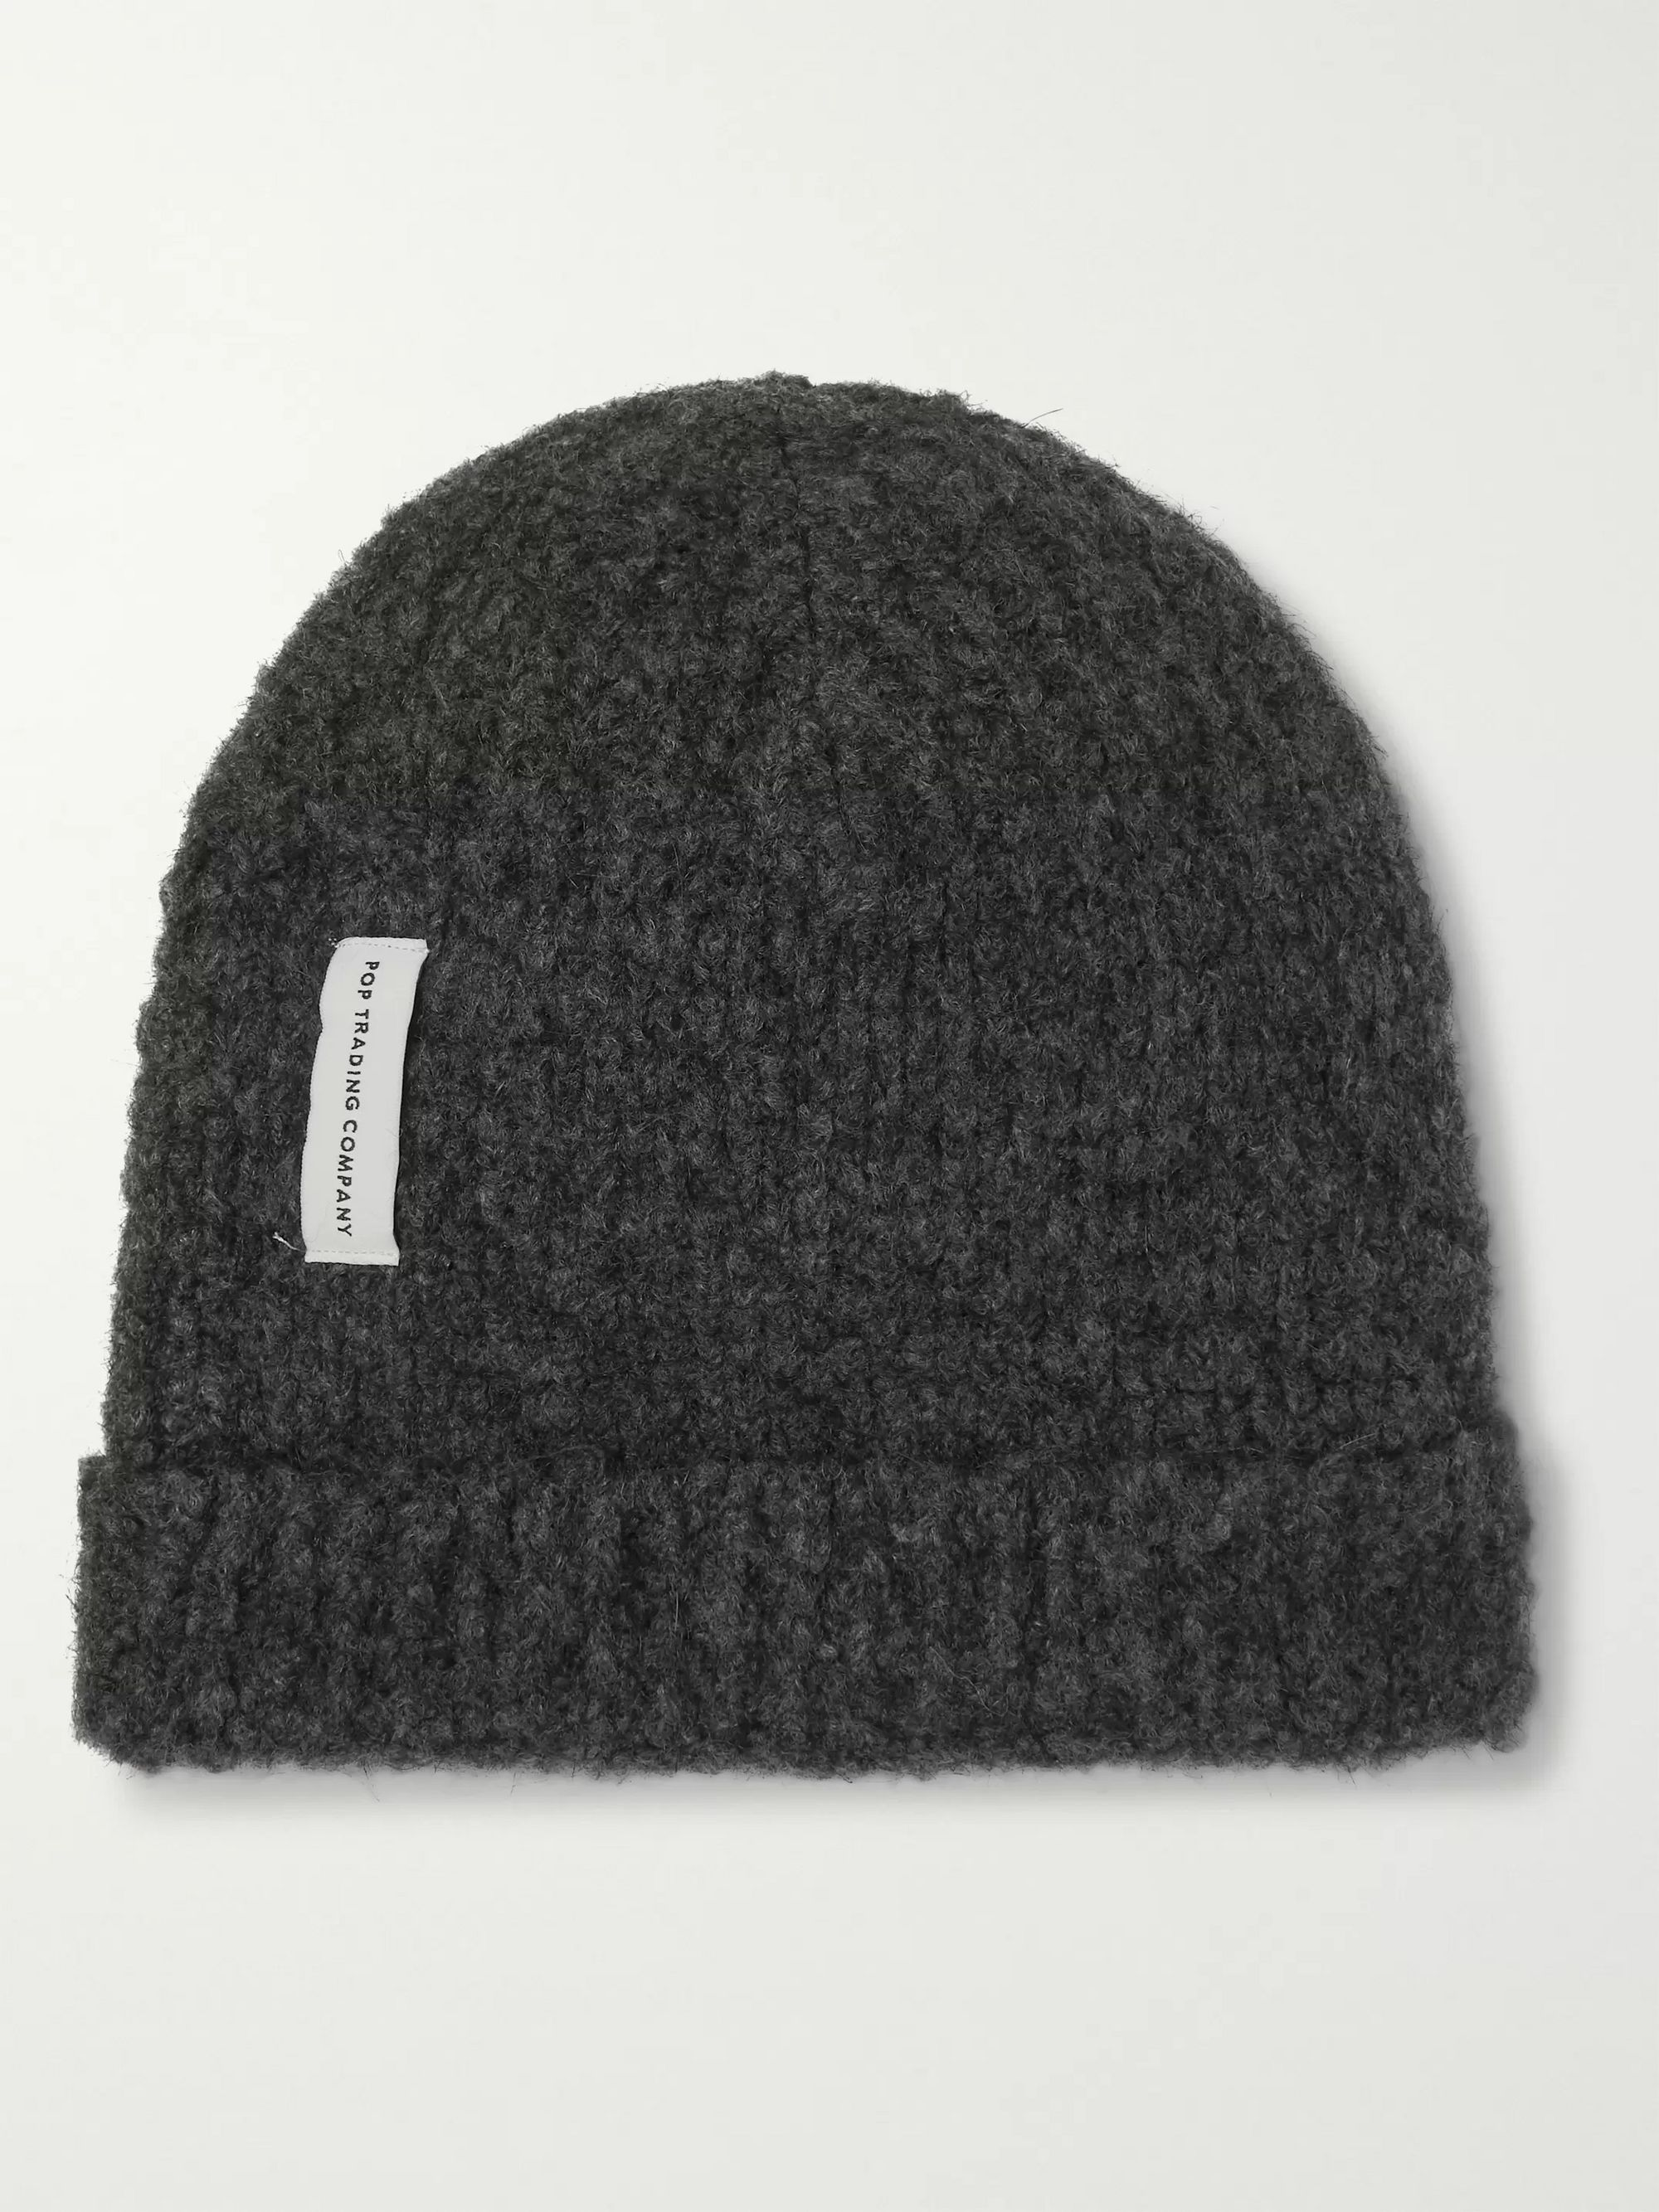 Pop Trading Company Logo-Appliquéd Stretch-Knit Beanie